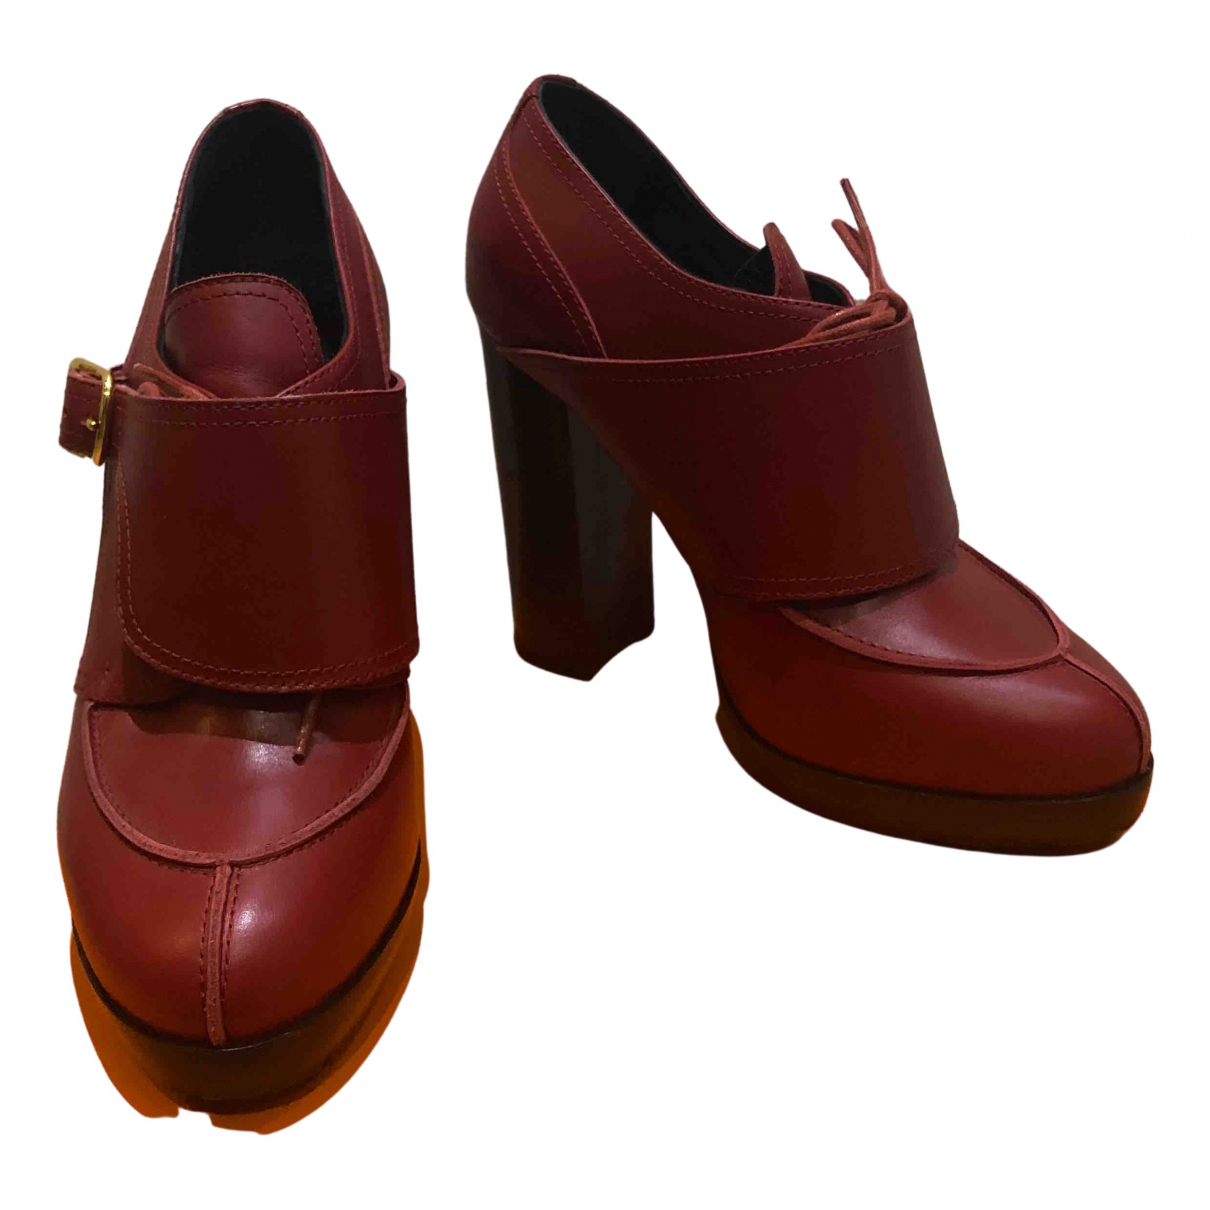 Hermès \N Red Leather Ankle boots for Women 36 EU